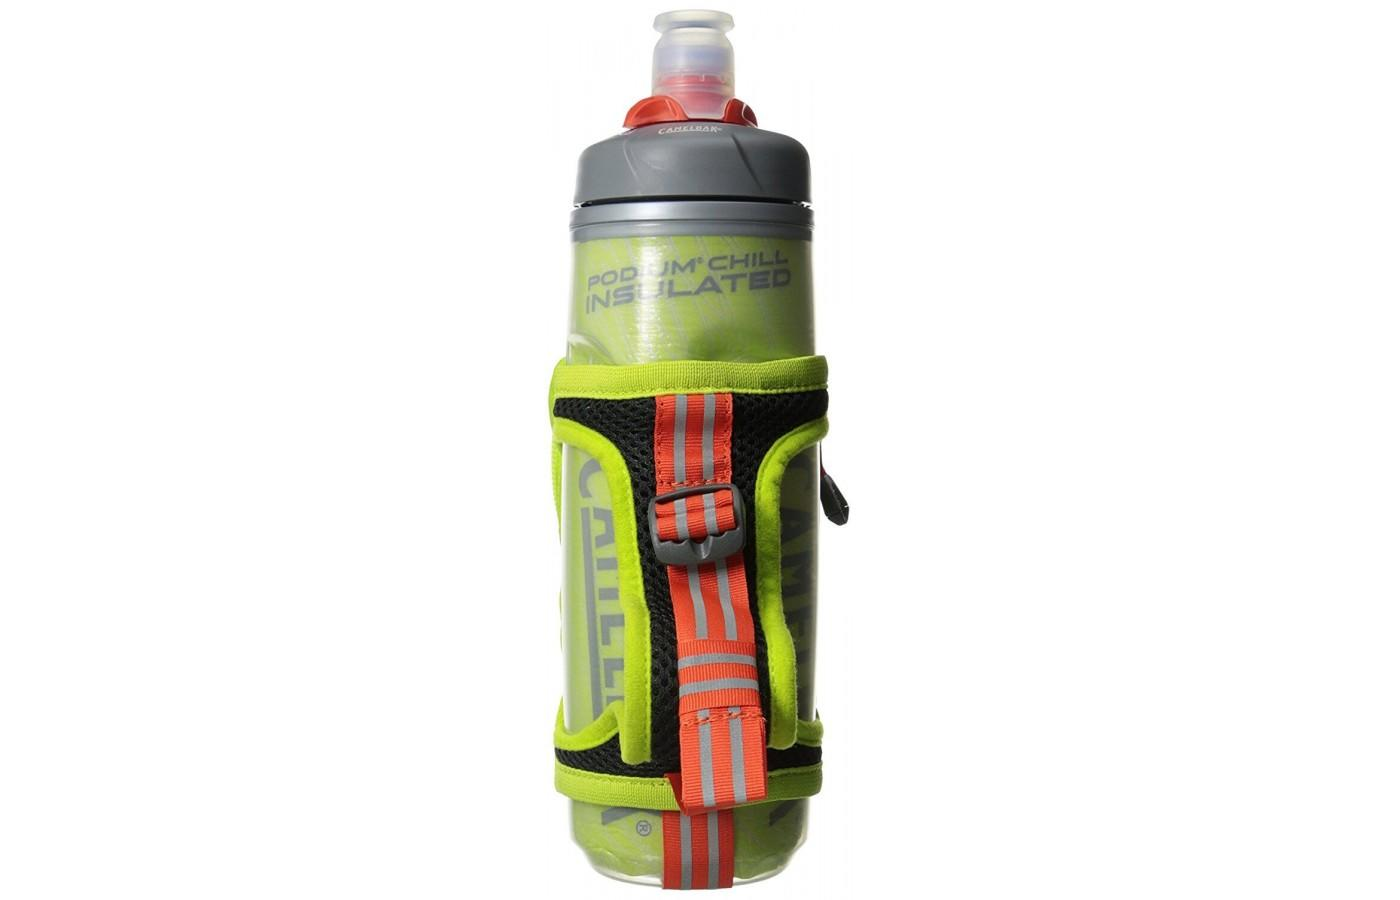 With reflective detailing on the bottle and strap, Camelbak Quick Grip Chill Handheld Water Bottle creates added visibility for dark conditions